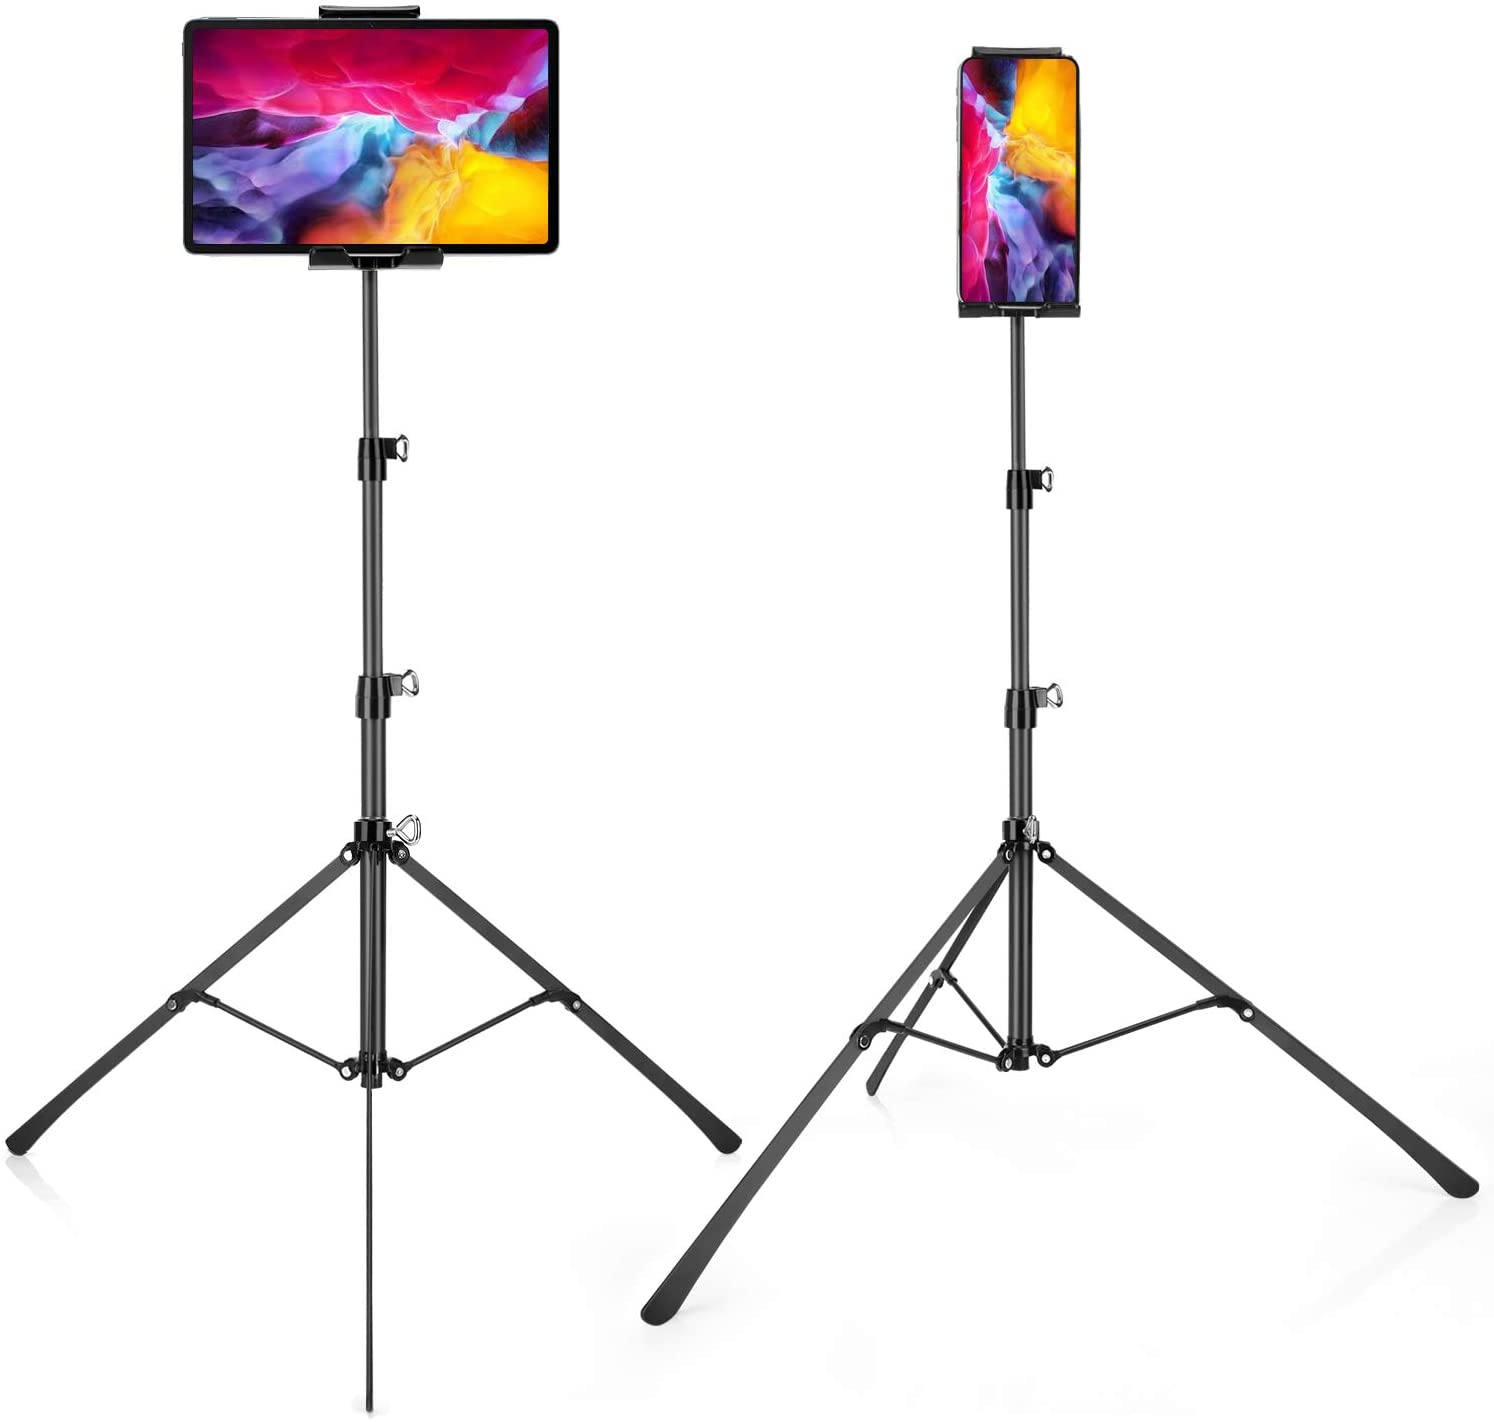 Phone and iPad Tripod Stand, Foldable Floor Tablet Stands, Height Adjustable 20 to 50 Inch 360°Rotating Tablet Holder Mount for iPad Pro, iPad Air, iPad Mini and All 4-12 Inch Tablets, Carrying Case